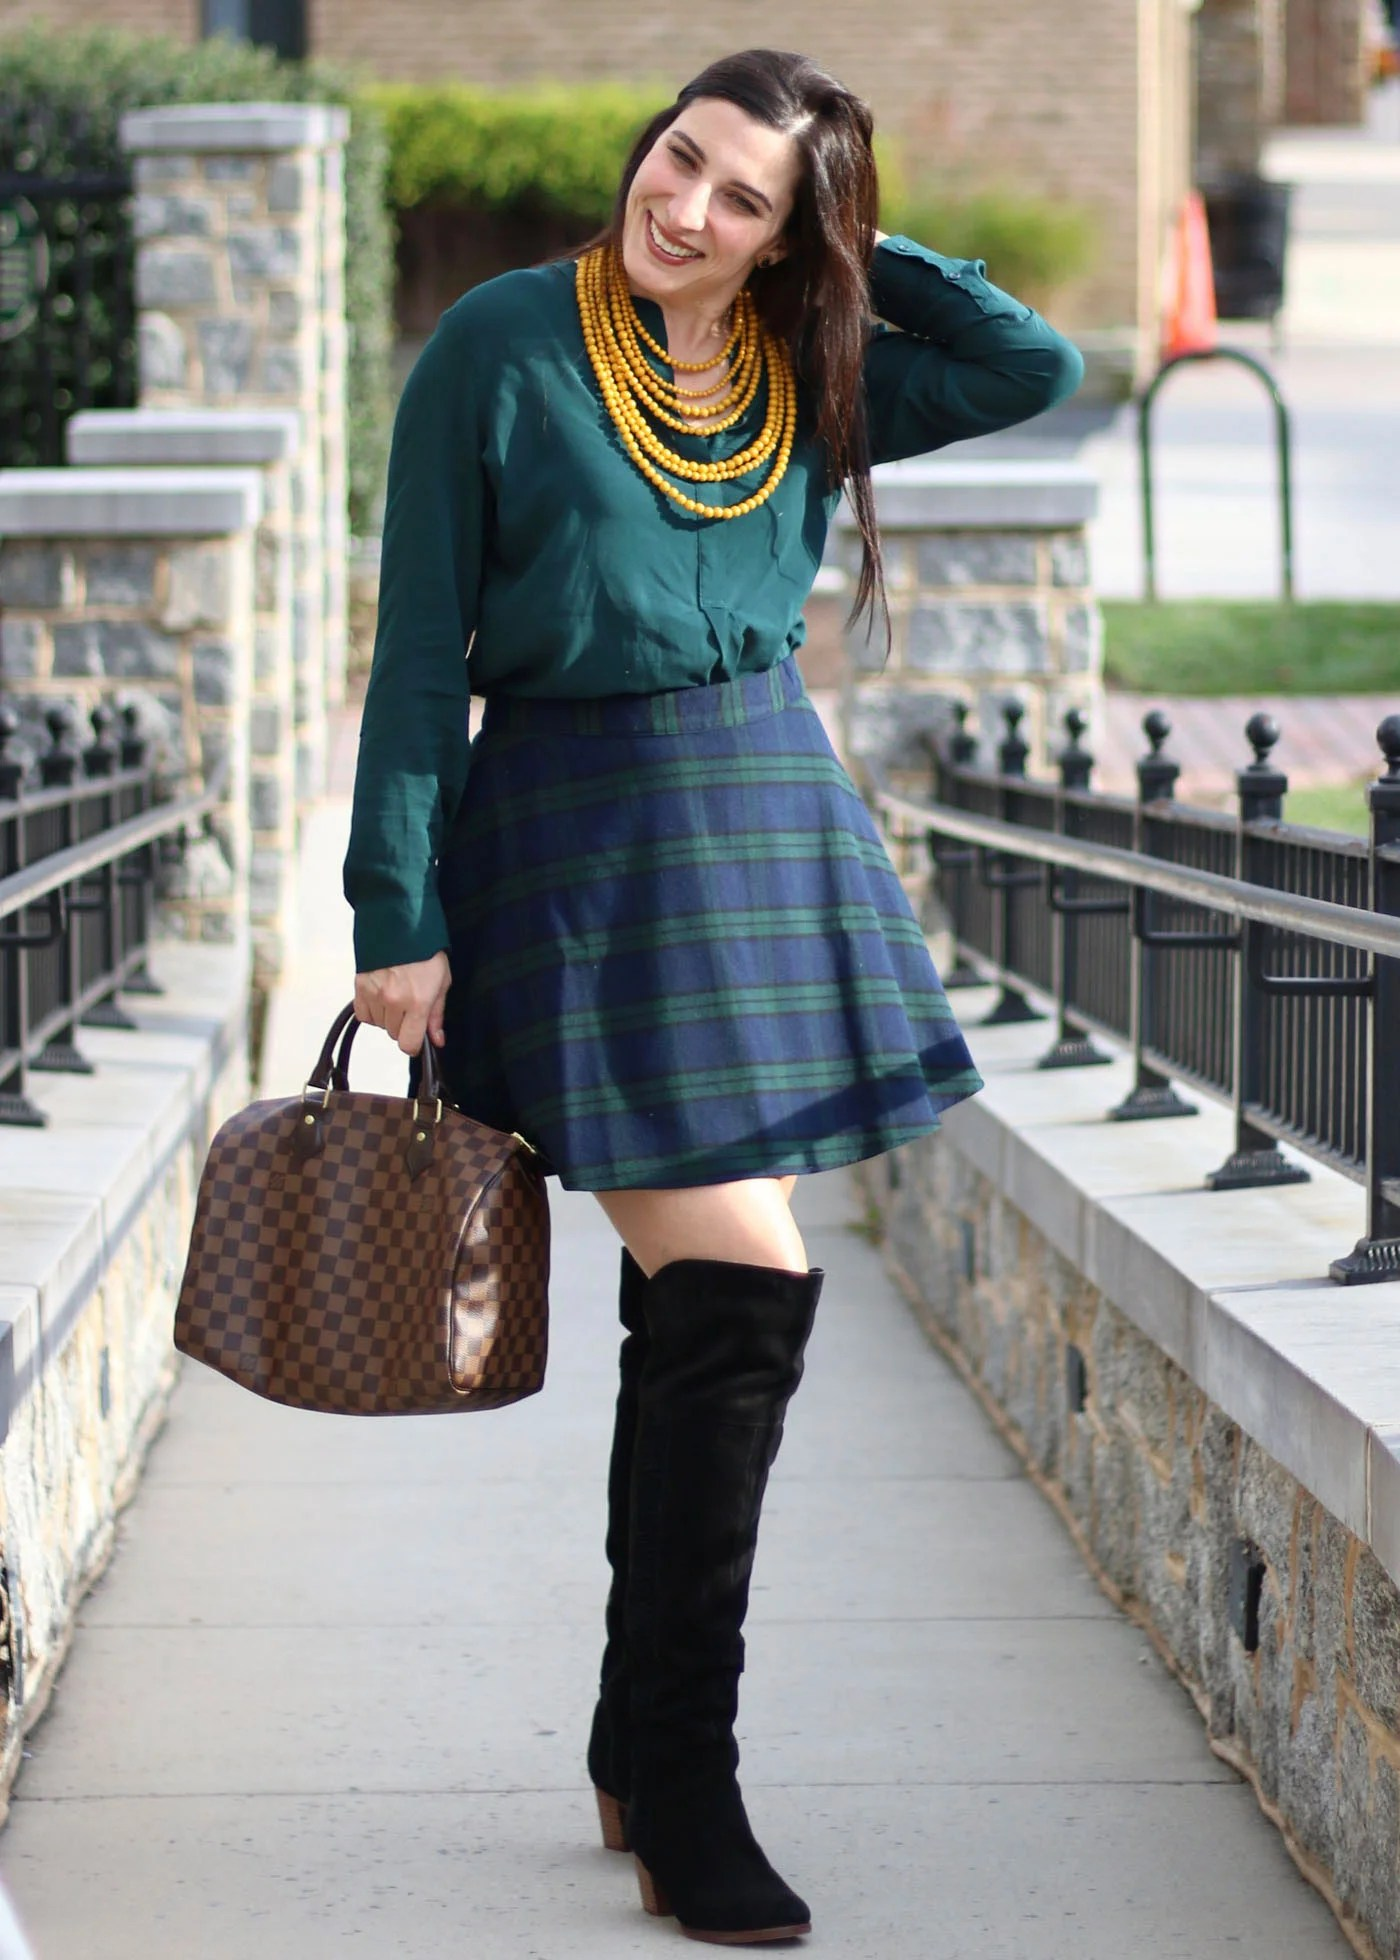 Over The Knee Boots, Plaid Skirt, Louis Vuitton Speedy Damier Ebene